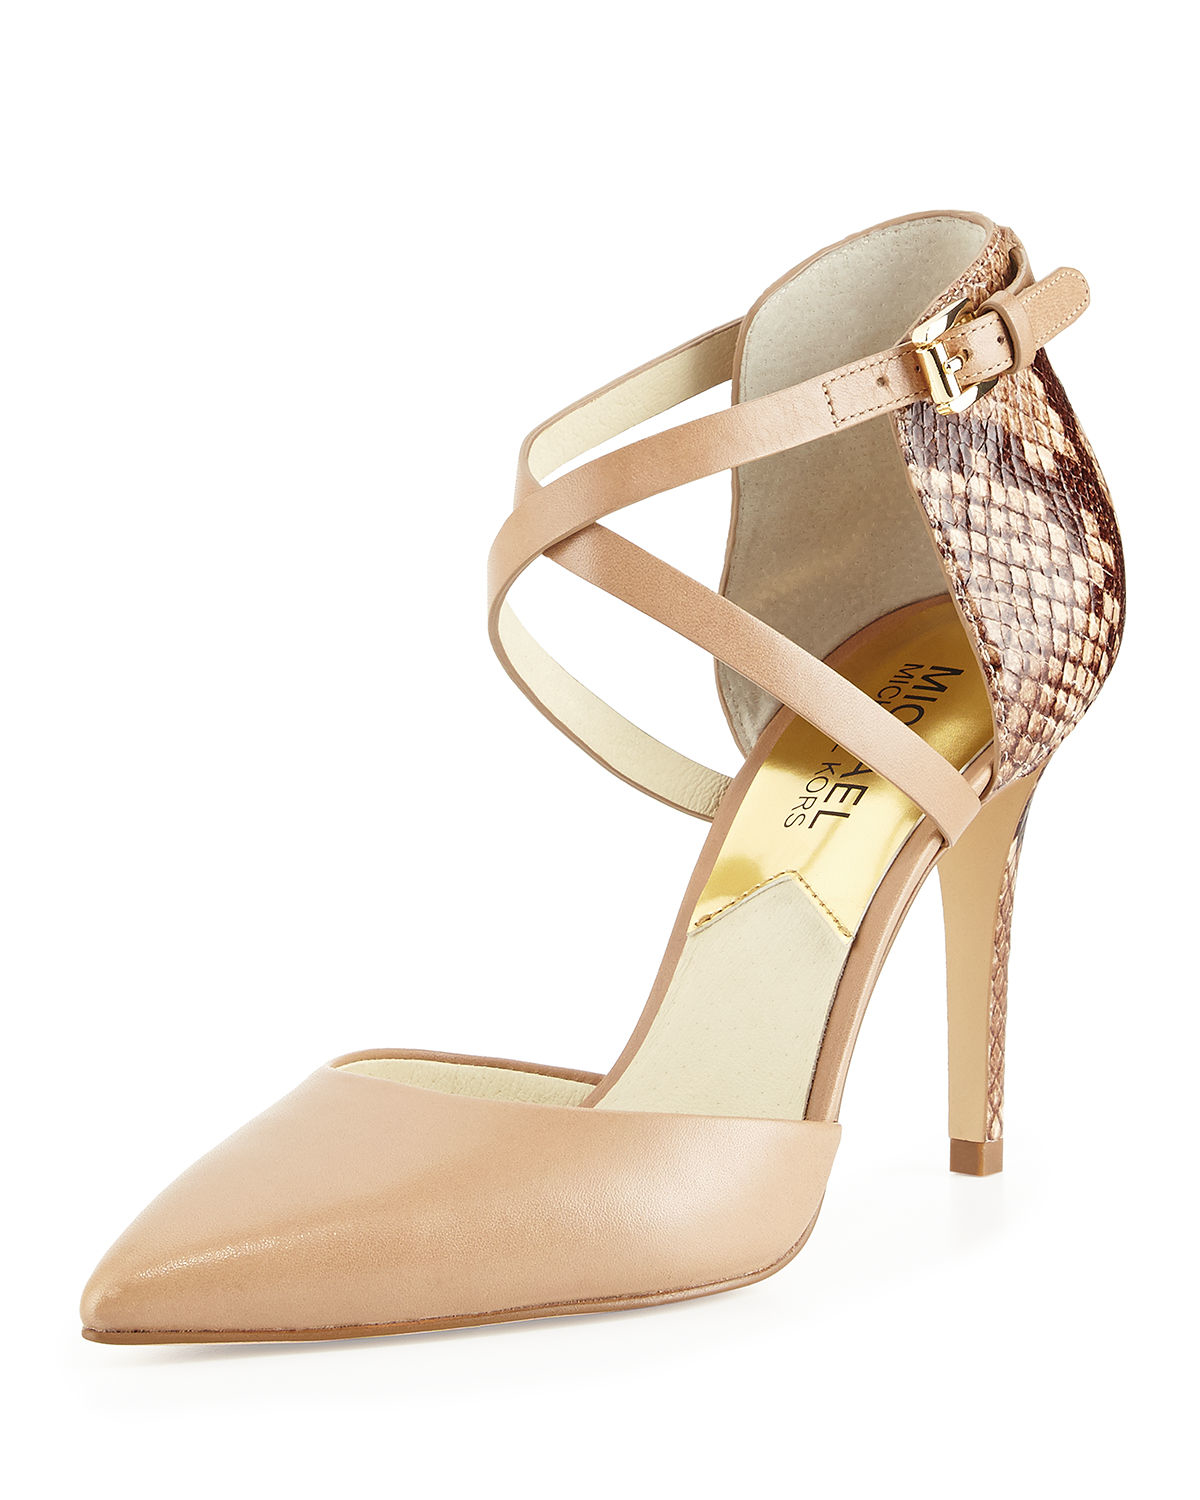 42d7a7419011 Lyst - MICHAEL Michael Kors Alexia Two-Toned Leather Pumps in Natural